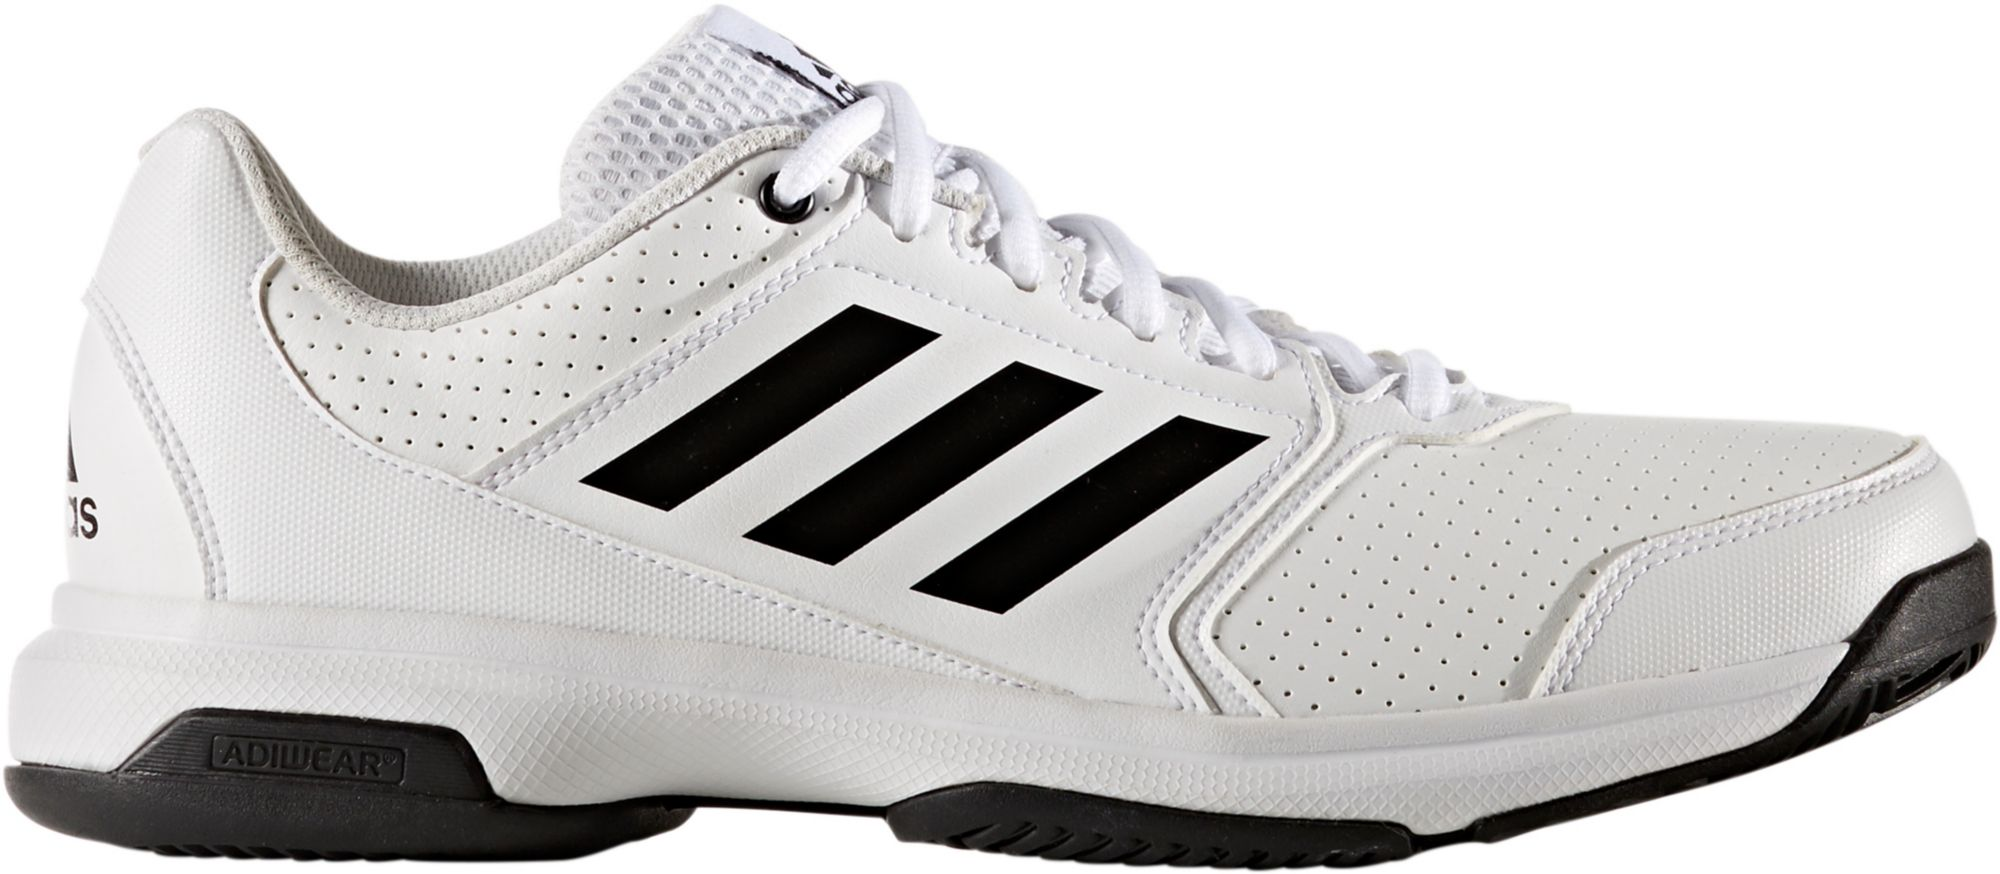 adidas tennis shoes product image · adidas menu0027s adizero attack tennis shoes TWKLLRP